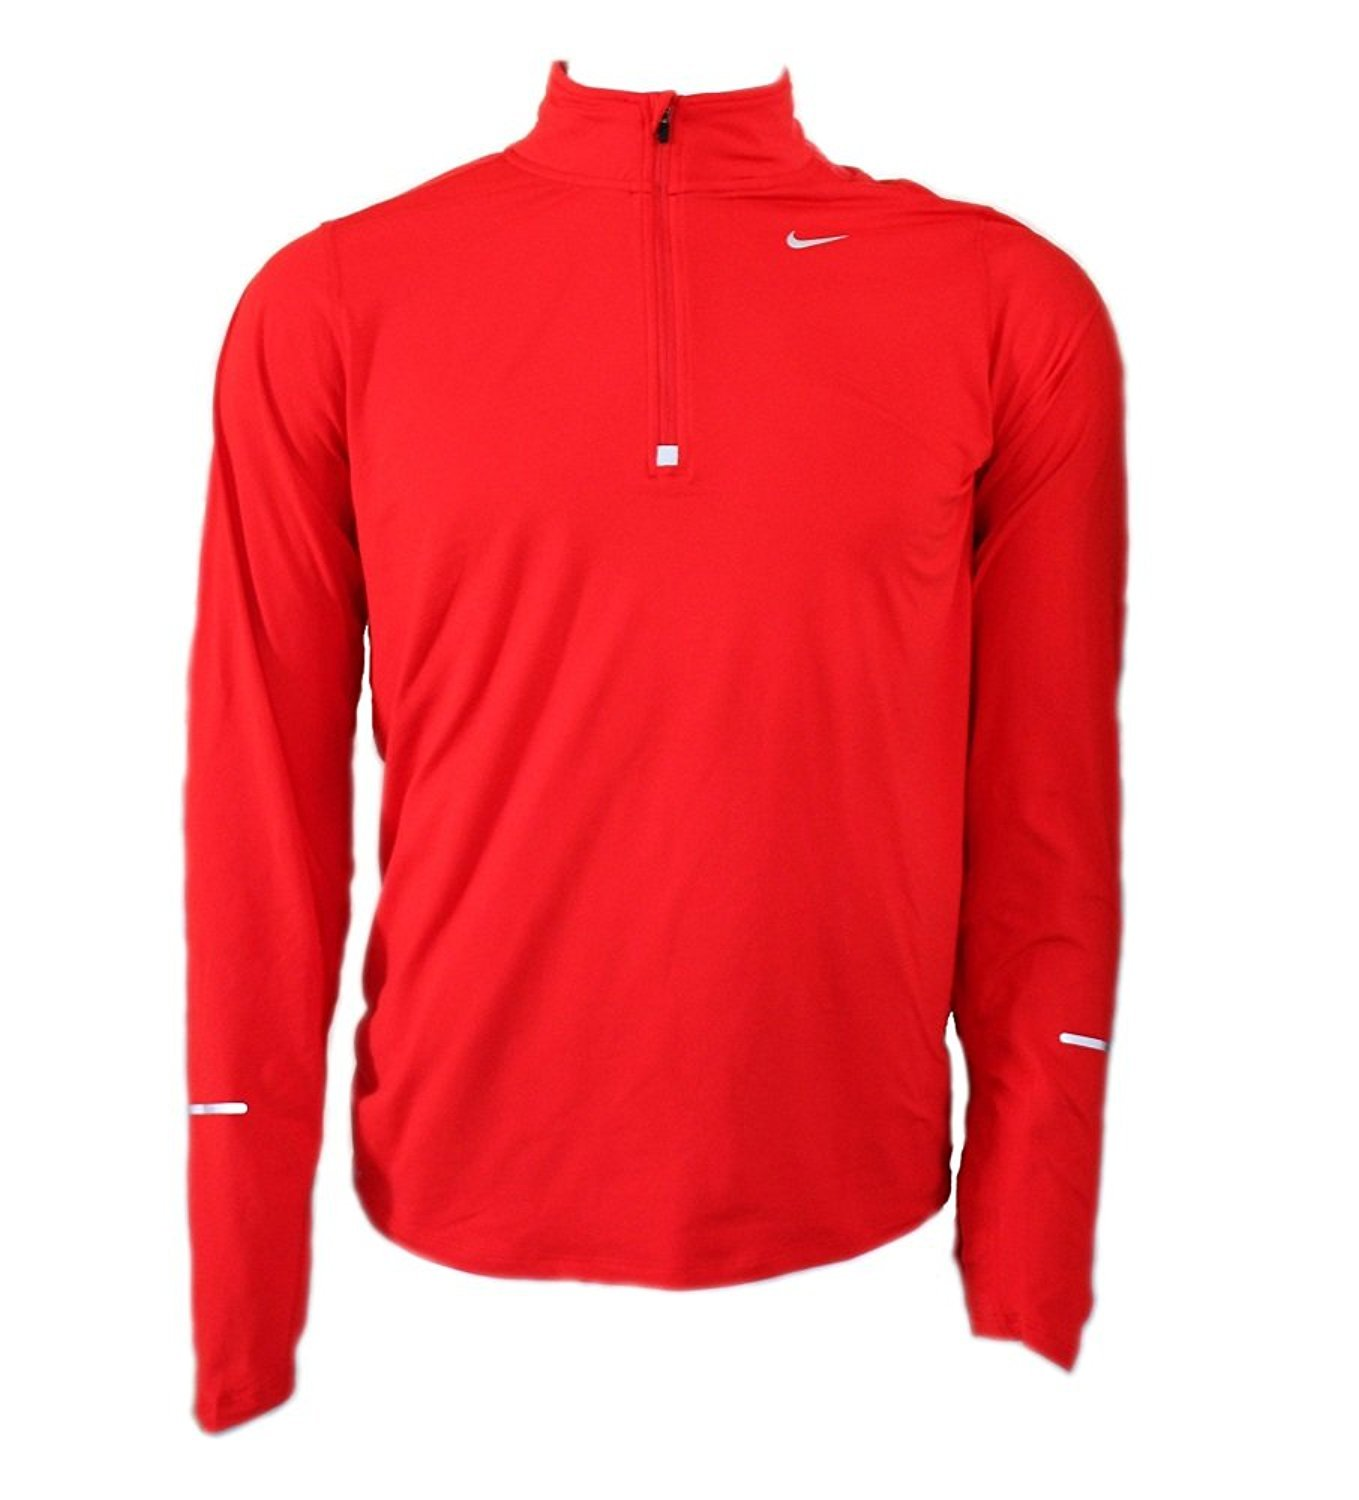 NIKE Men's Dry Element Running Top B06XXD9H74 Medium|Red/Reflective Silver